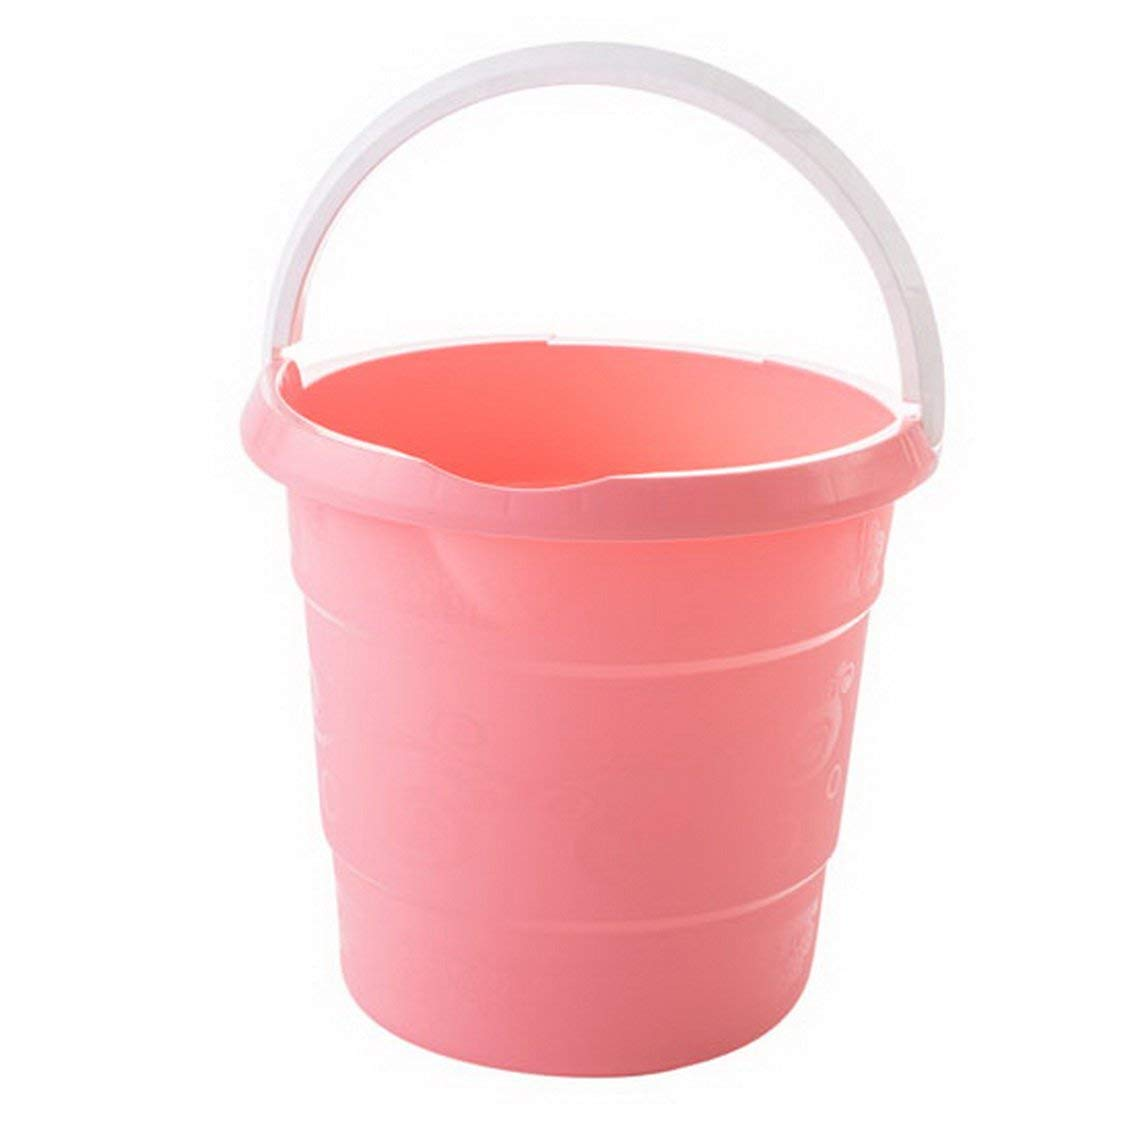 Cheap Baby Tub Bucket, find Baby Tub Bucket deals on line at Alibaba.com